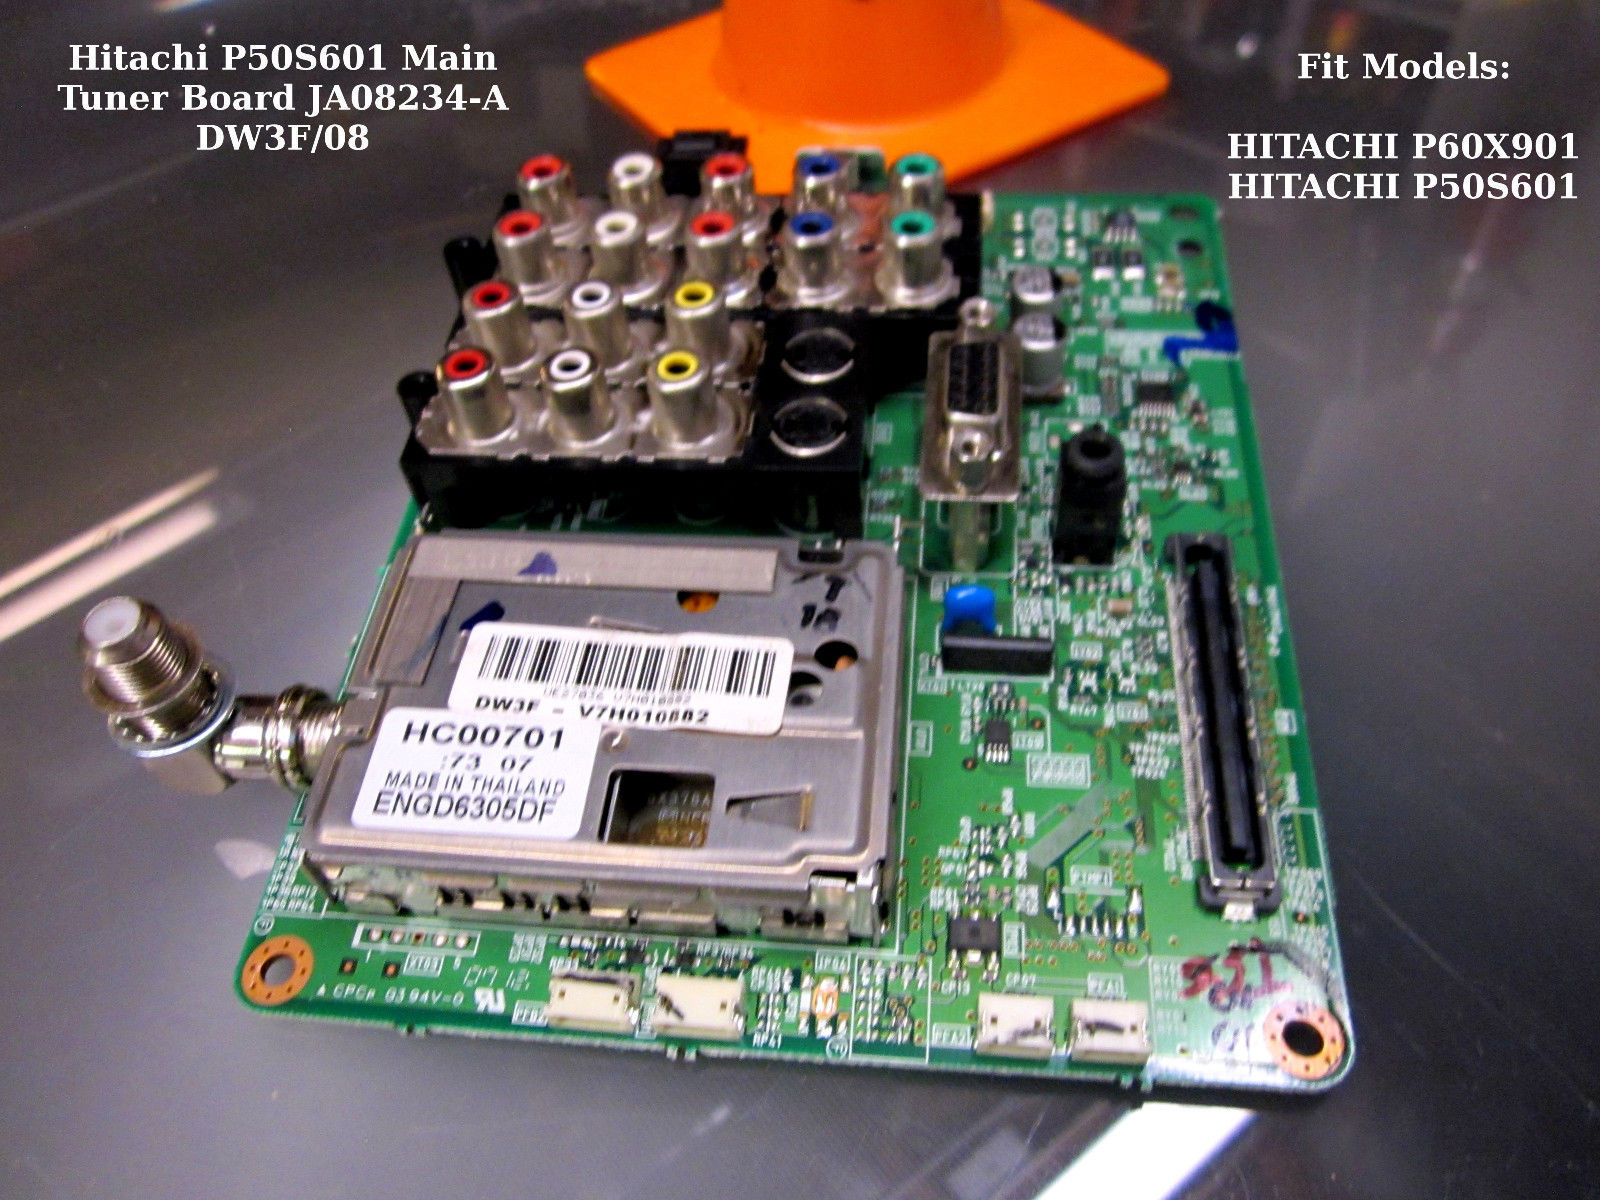 Primary image for Hitachi P50S601 Main Tuner Board JA08234-A DW3F/08 [See List]